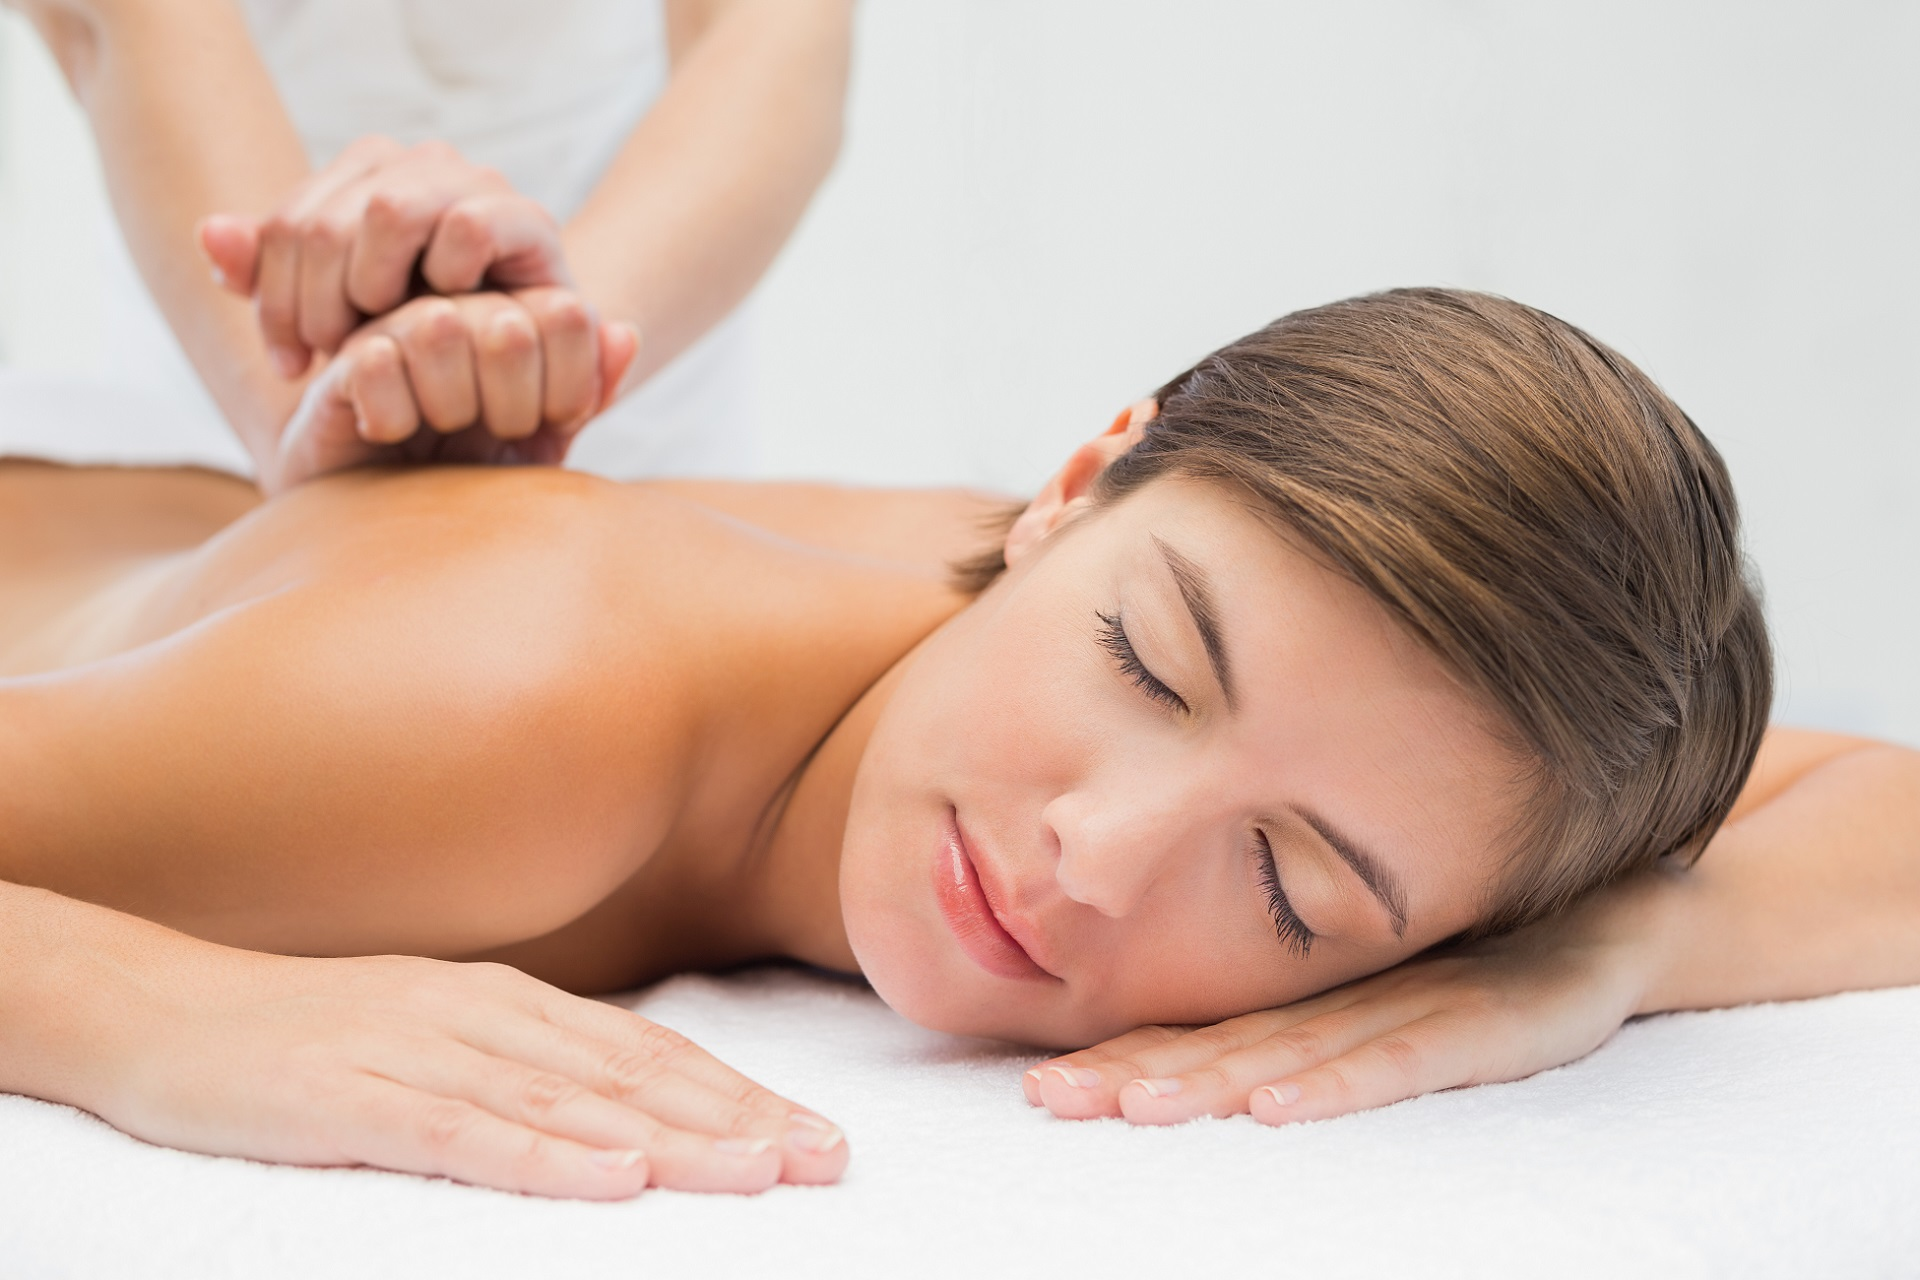 Discover Your Health With Registered Massage